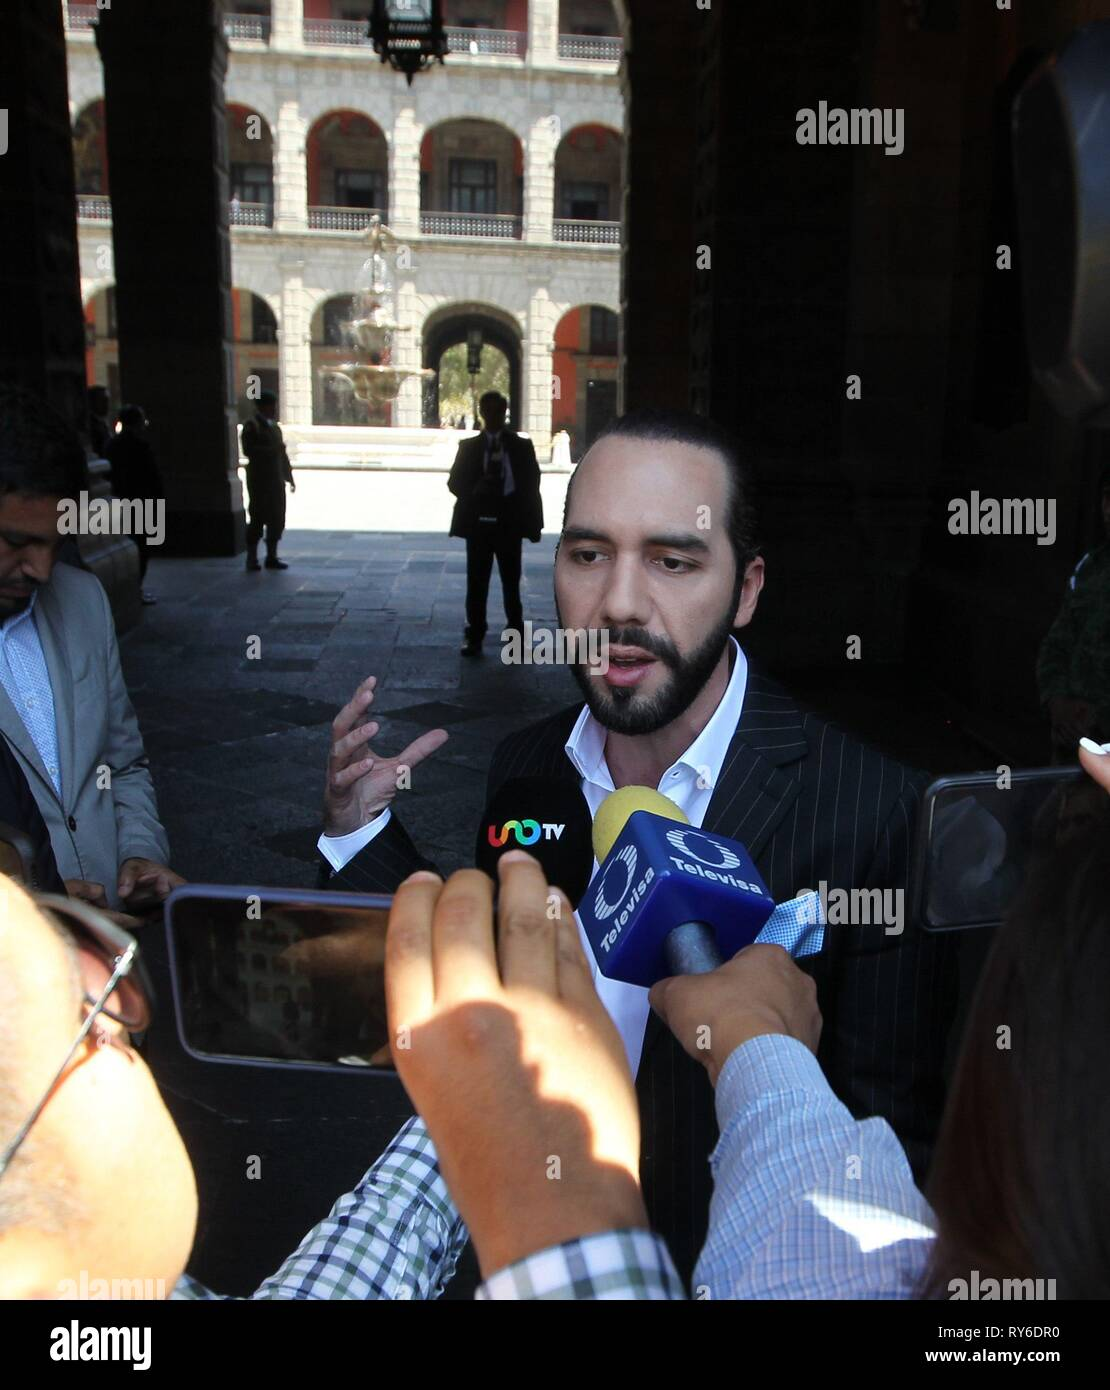 Salvadoran President-elect Nayib Bukele (C) arrives for a meeting with Mexican President Andres Manuel Lopez Obrador, at the National Palace, in Mexico City, Mexico, 12 March 2019. EFE/ Mario Guzman - Stock Image